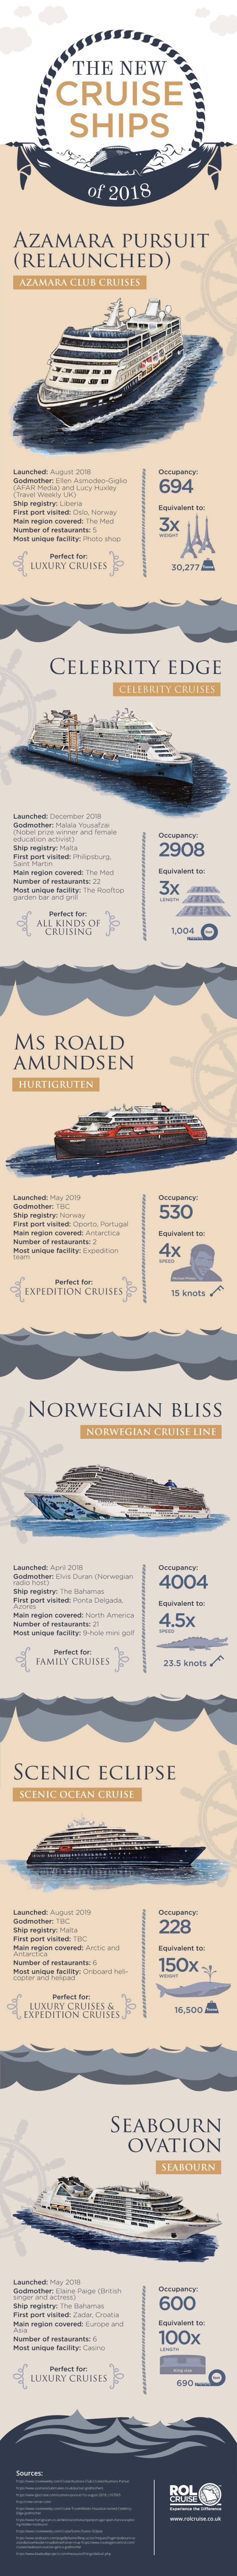 The fresh cruise ships for 2018 #infographic